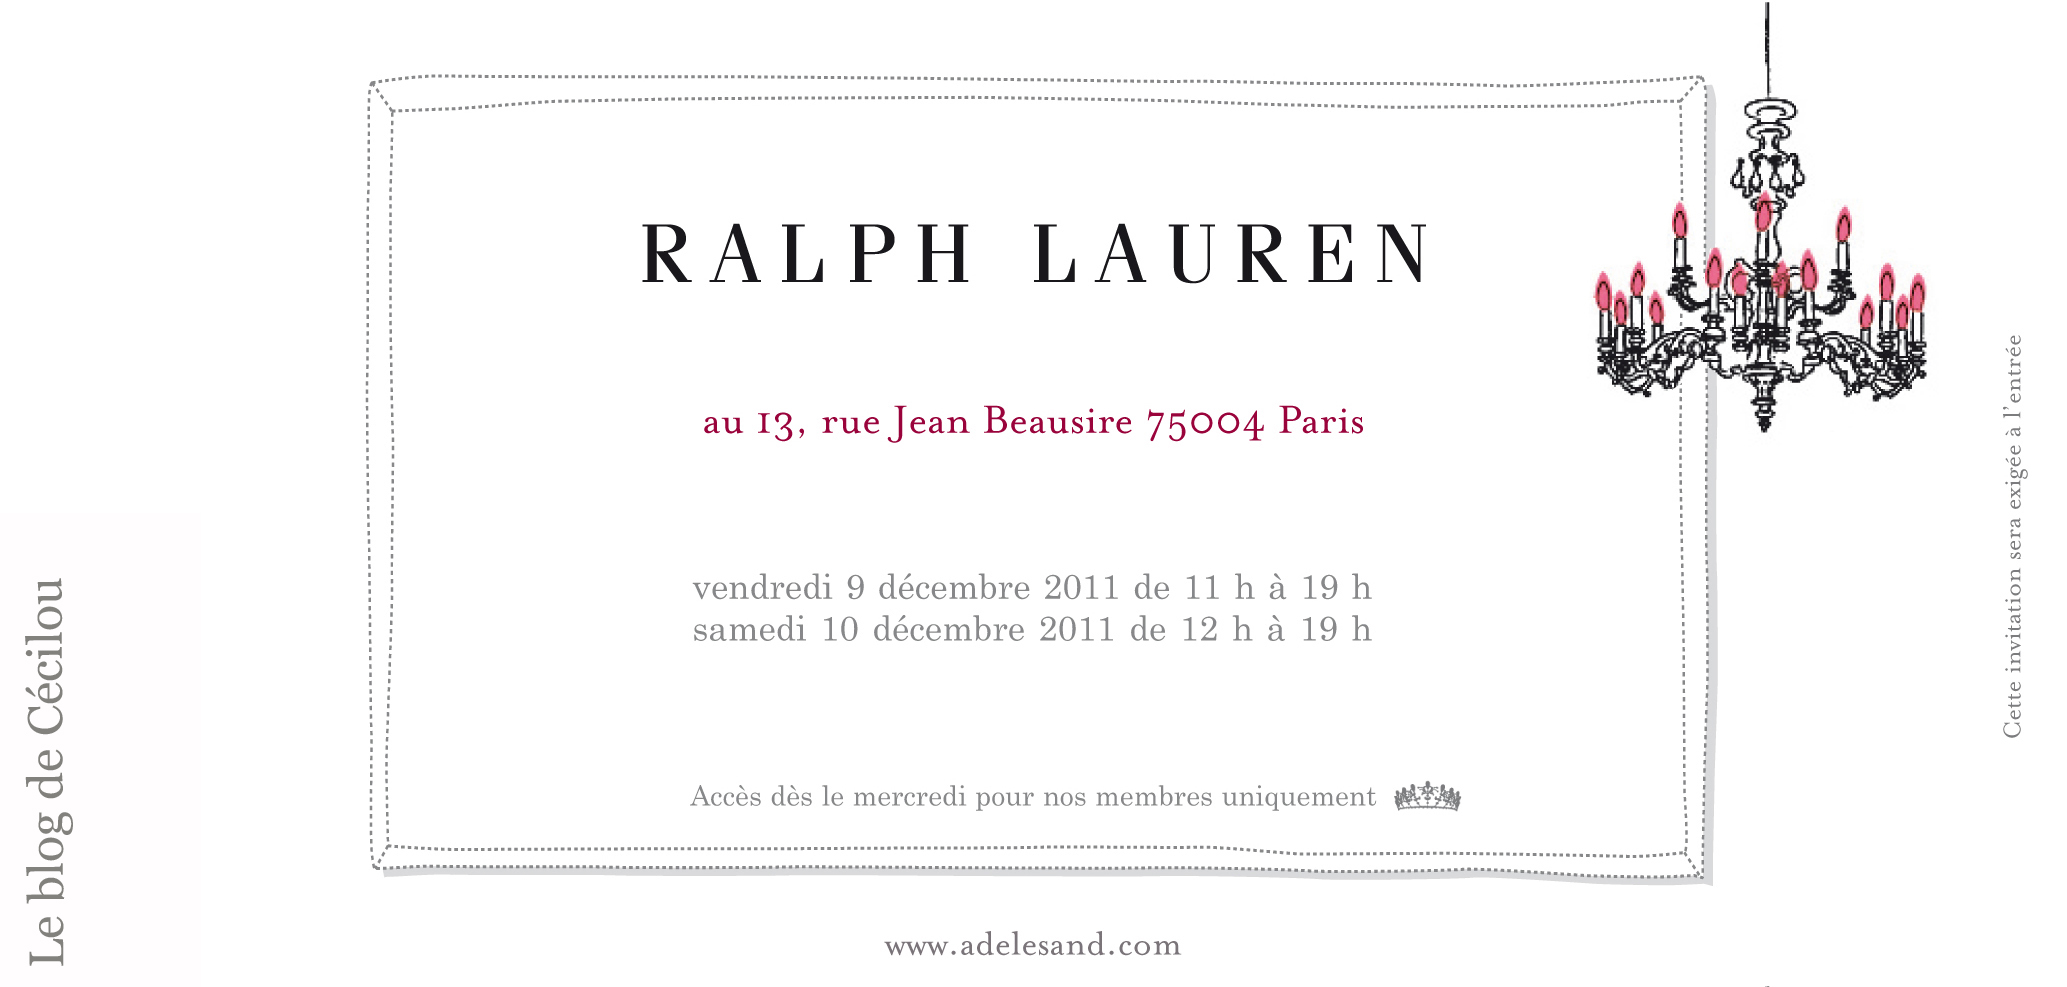 ralph lauren en vente privee vente privee chemise de. Black Bedroom Furniture Sets. Home Design Ideas